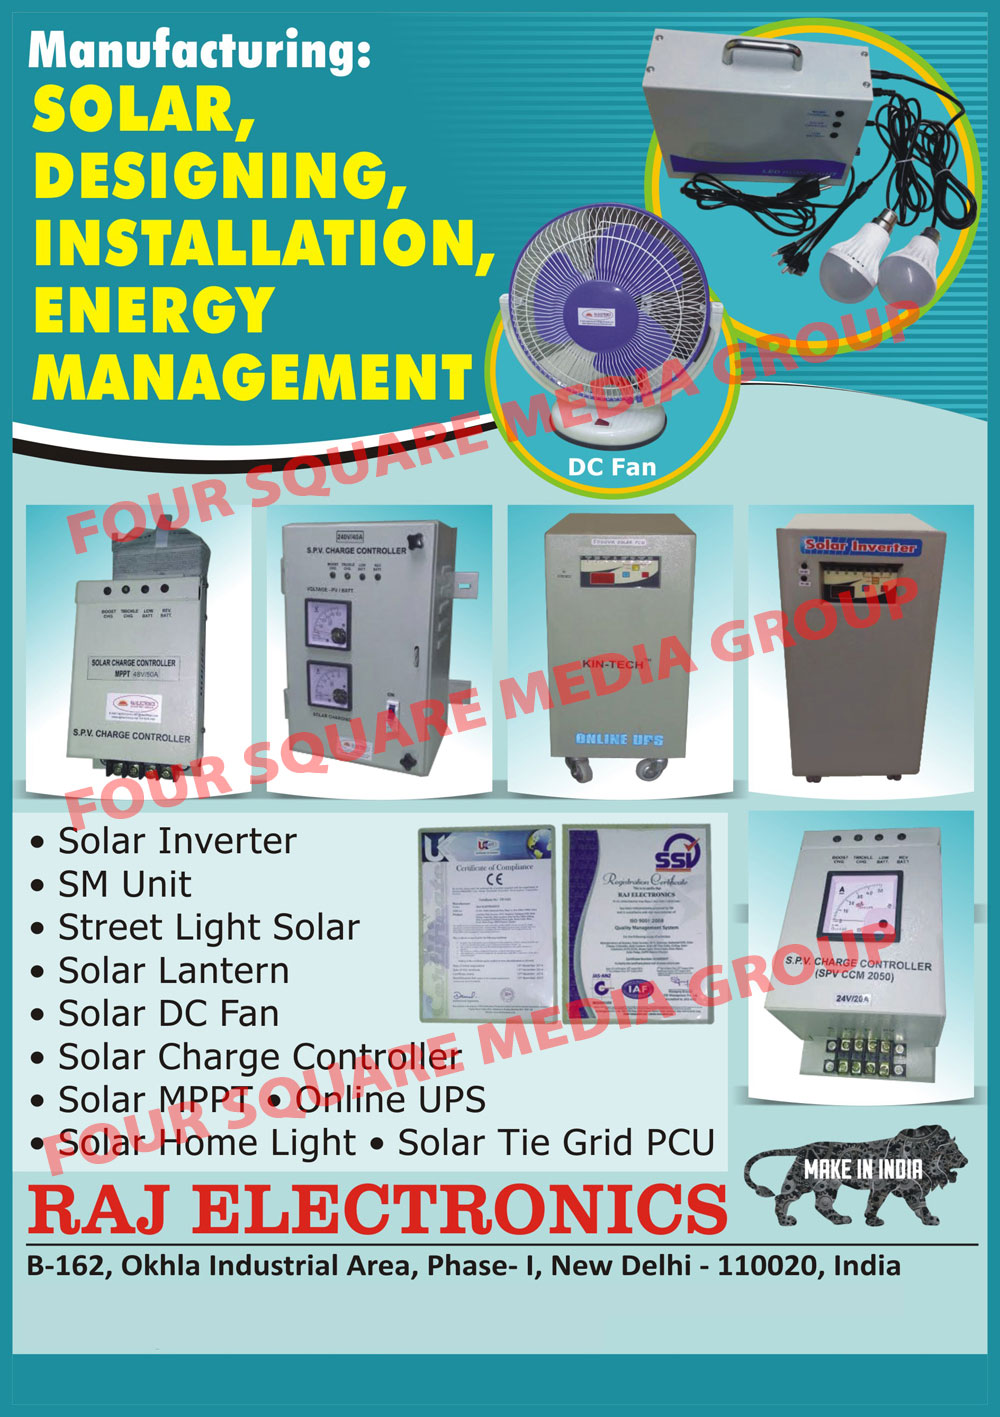 Solar Inverters, Solar Street Lights, Solar Lanterns, Solar DC Table Fans, Solar Charge Controllers, Solar MPPT, Online UPS, Solar Tie Grid PCU, Solar Home Lights